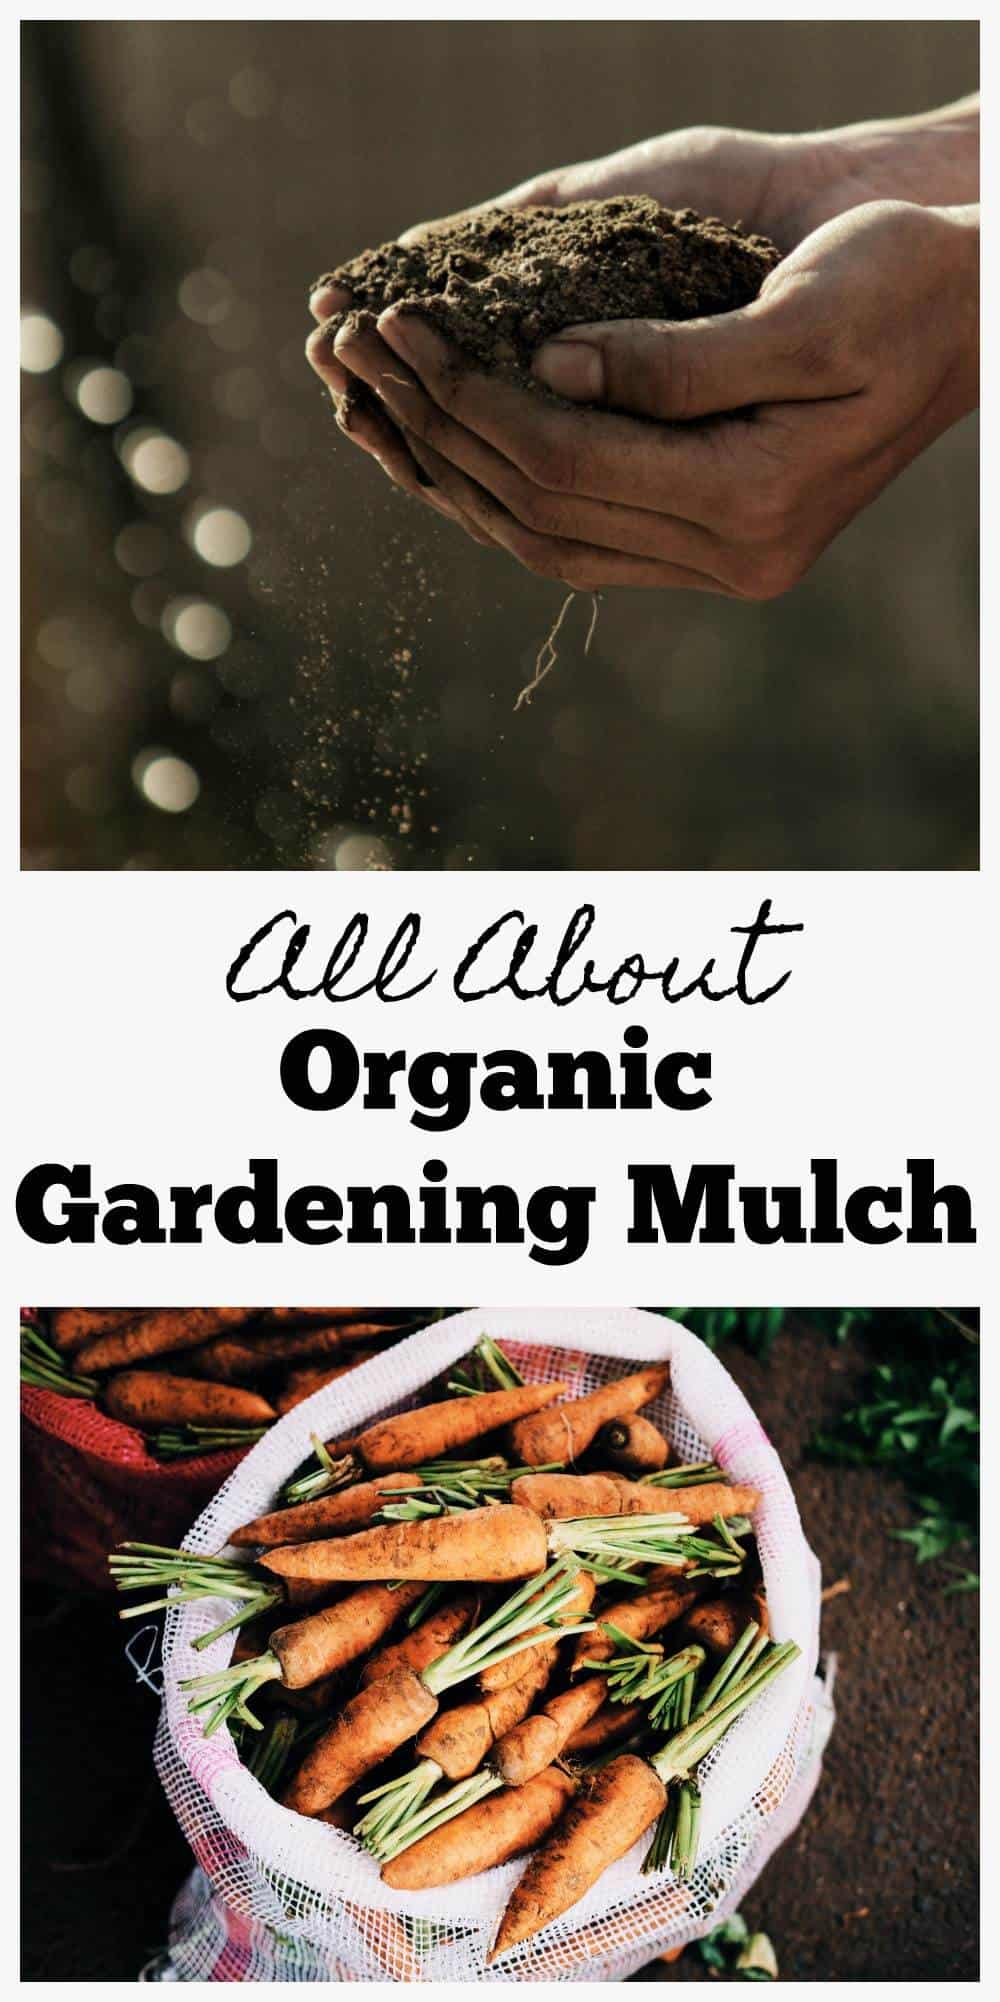 All about Organic Gardening Mulch.  Preparing and applying organic gardening mulch, use of it around vegetable gardens, and how to make organic pesticide.